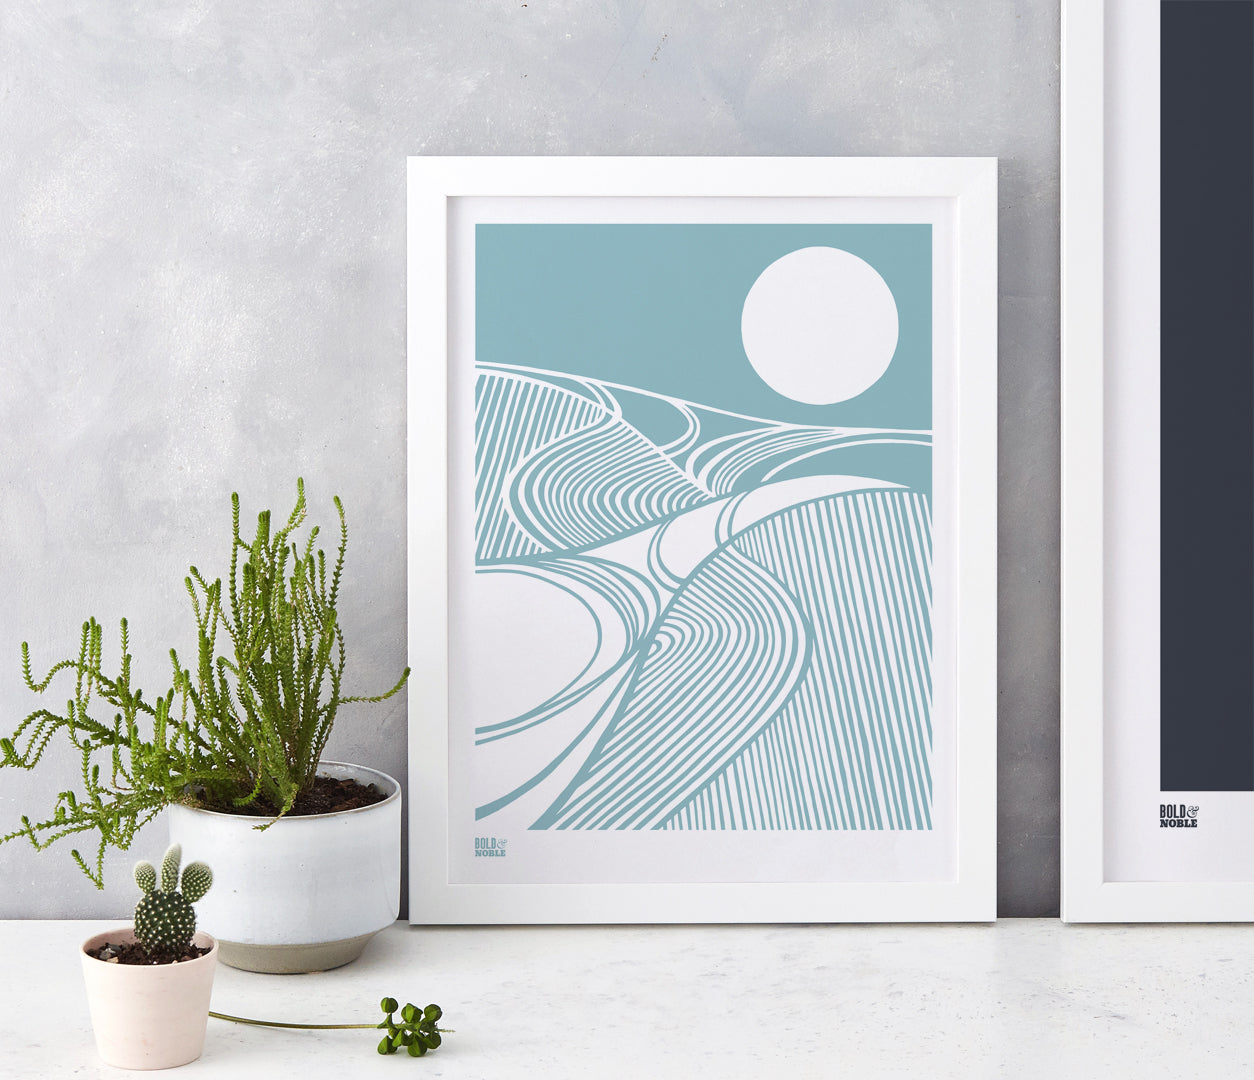 Harvest Field Moon Wall Art Print in Blue, Modern Print Designs for the Home